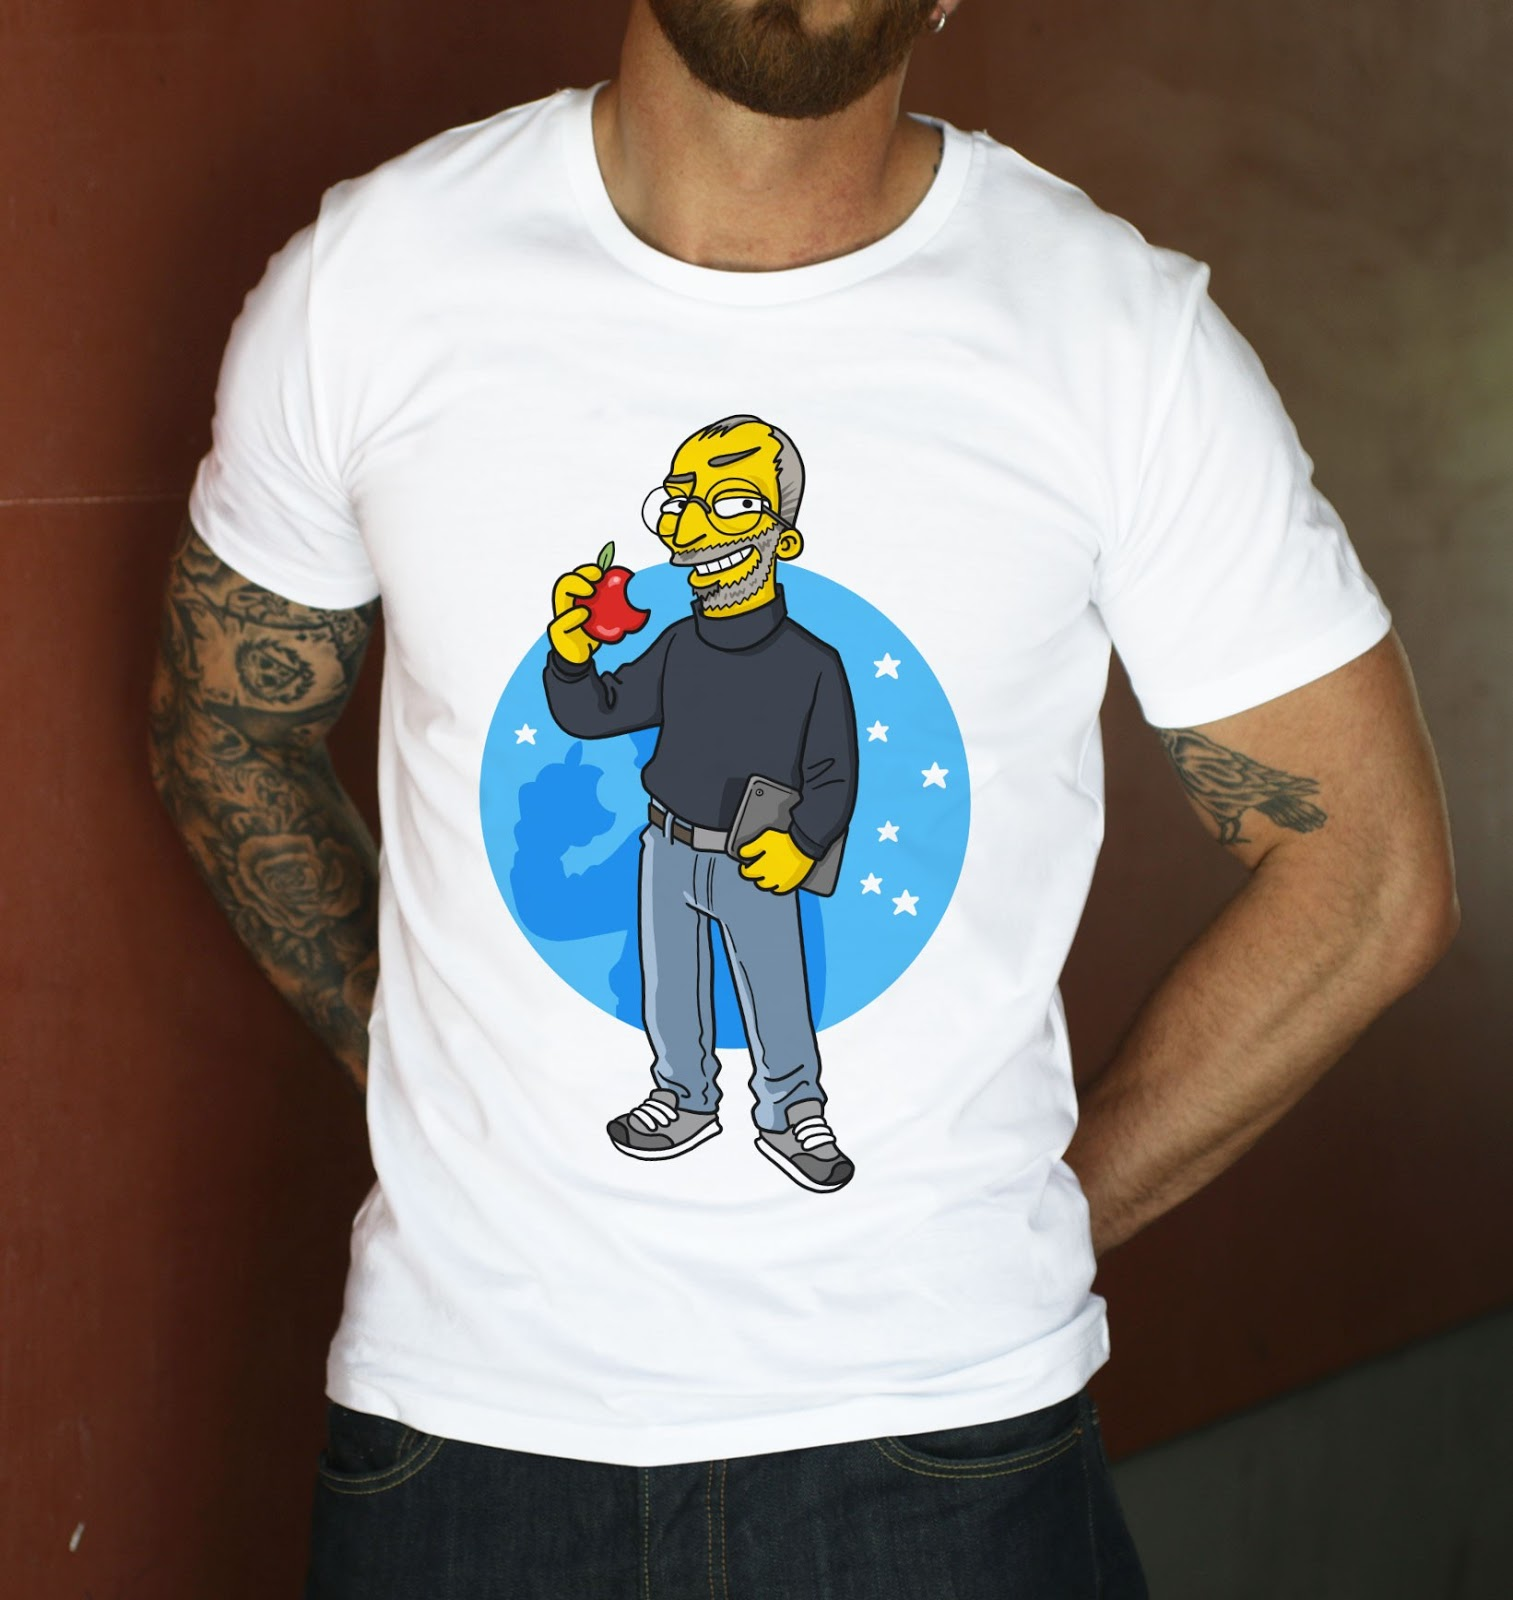 https://grafitee.co/tshirts/steve-jobs-teeshirt